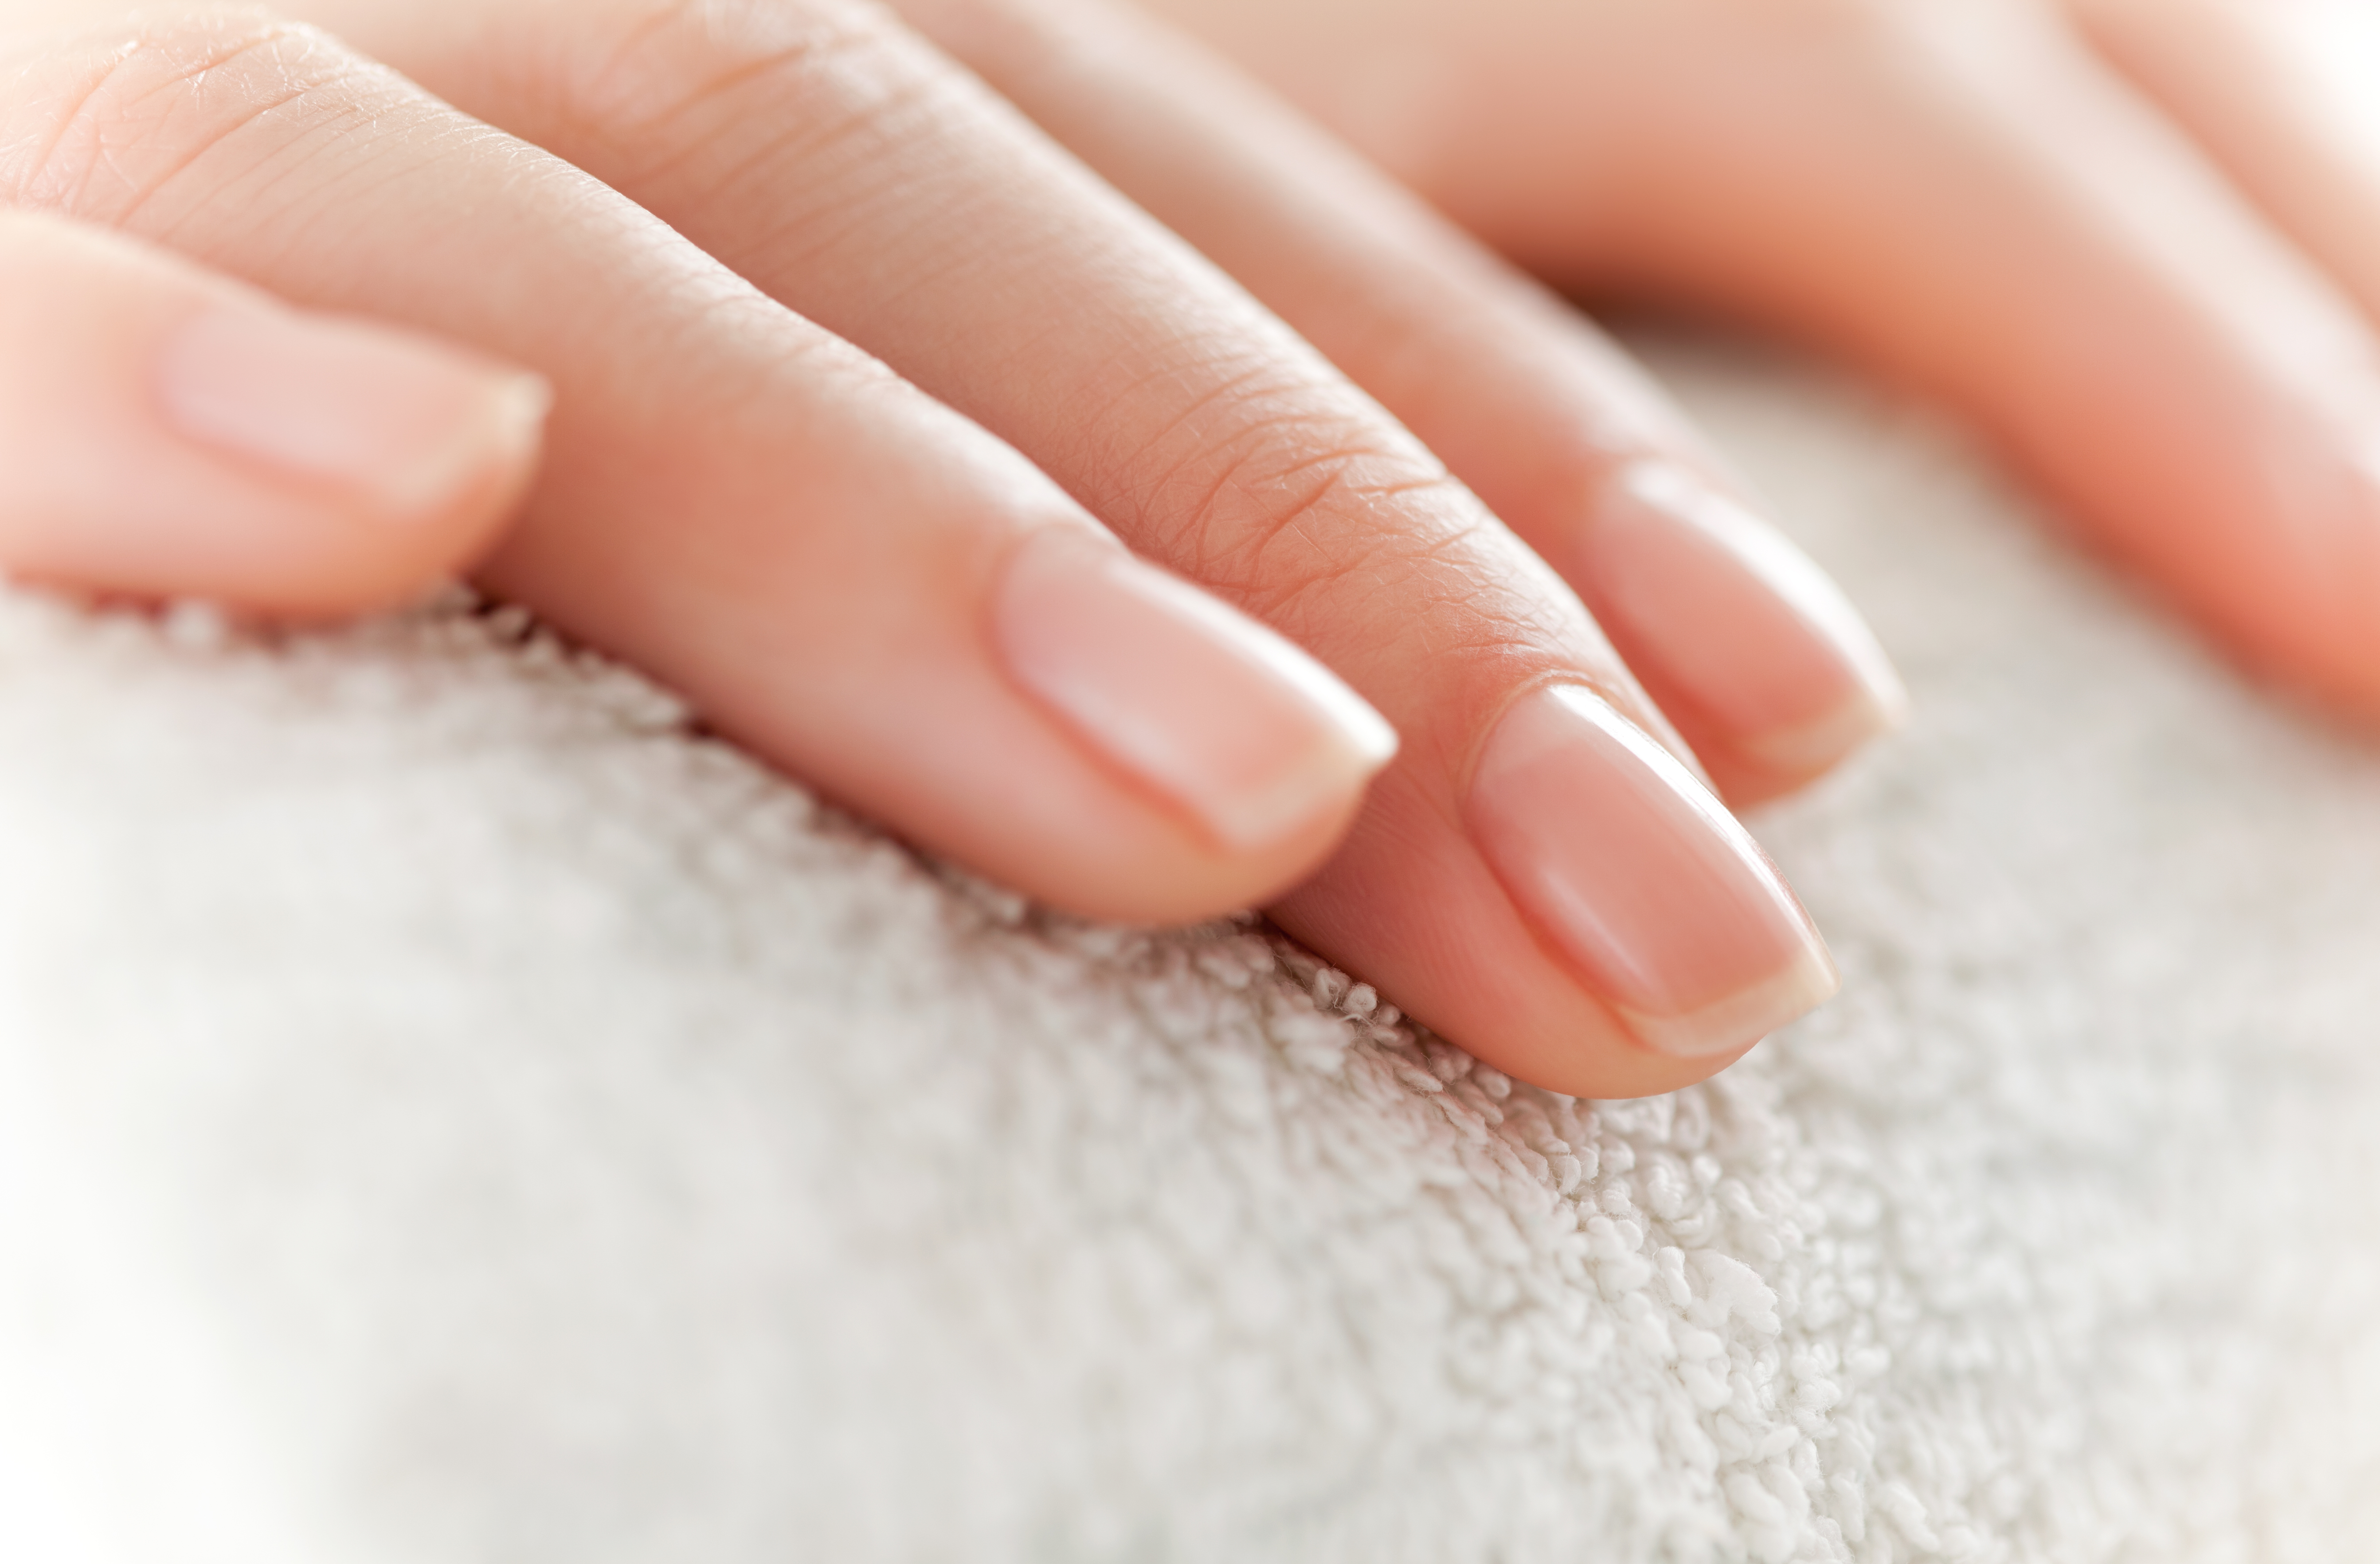 How to Use Rubbing Alcohol to Kill Nail Fungus | LEAFtv